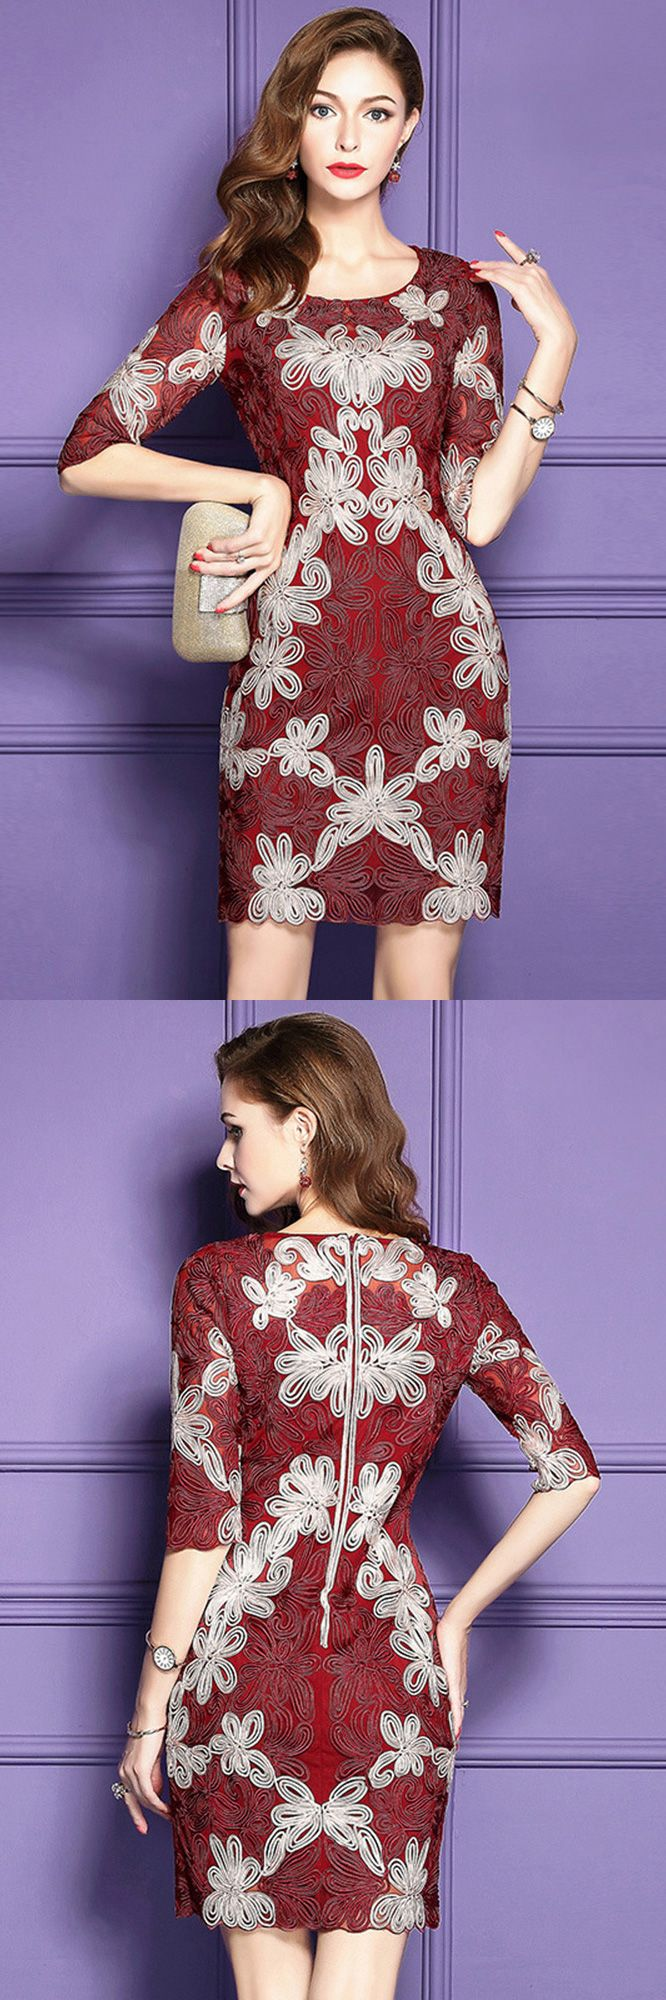 Only $84.99, Wedding Guest Dresses Embroidered Pattern Cocktail Dresses For Women Over 40,50 With High-end Embroidery #ZL8075 at #GemGrace. View more special Cocktail Dresses,Wedding Guest Dresses now? GemGrace is a solution for those who want to buy delicate gowns with affordable prices, a solution for those who have unique ideas about their gowns. Find out more>>